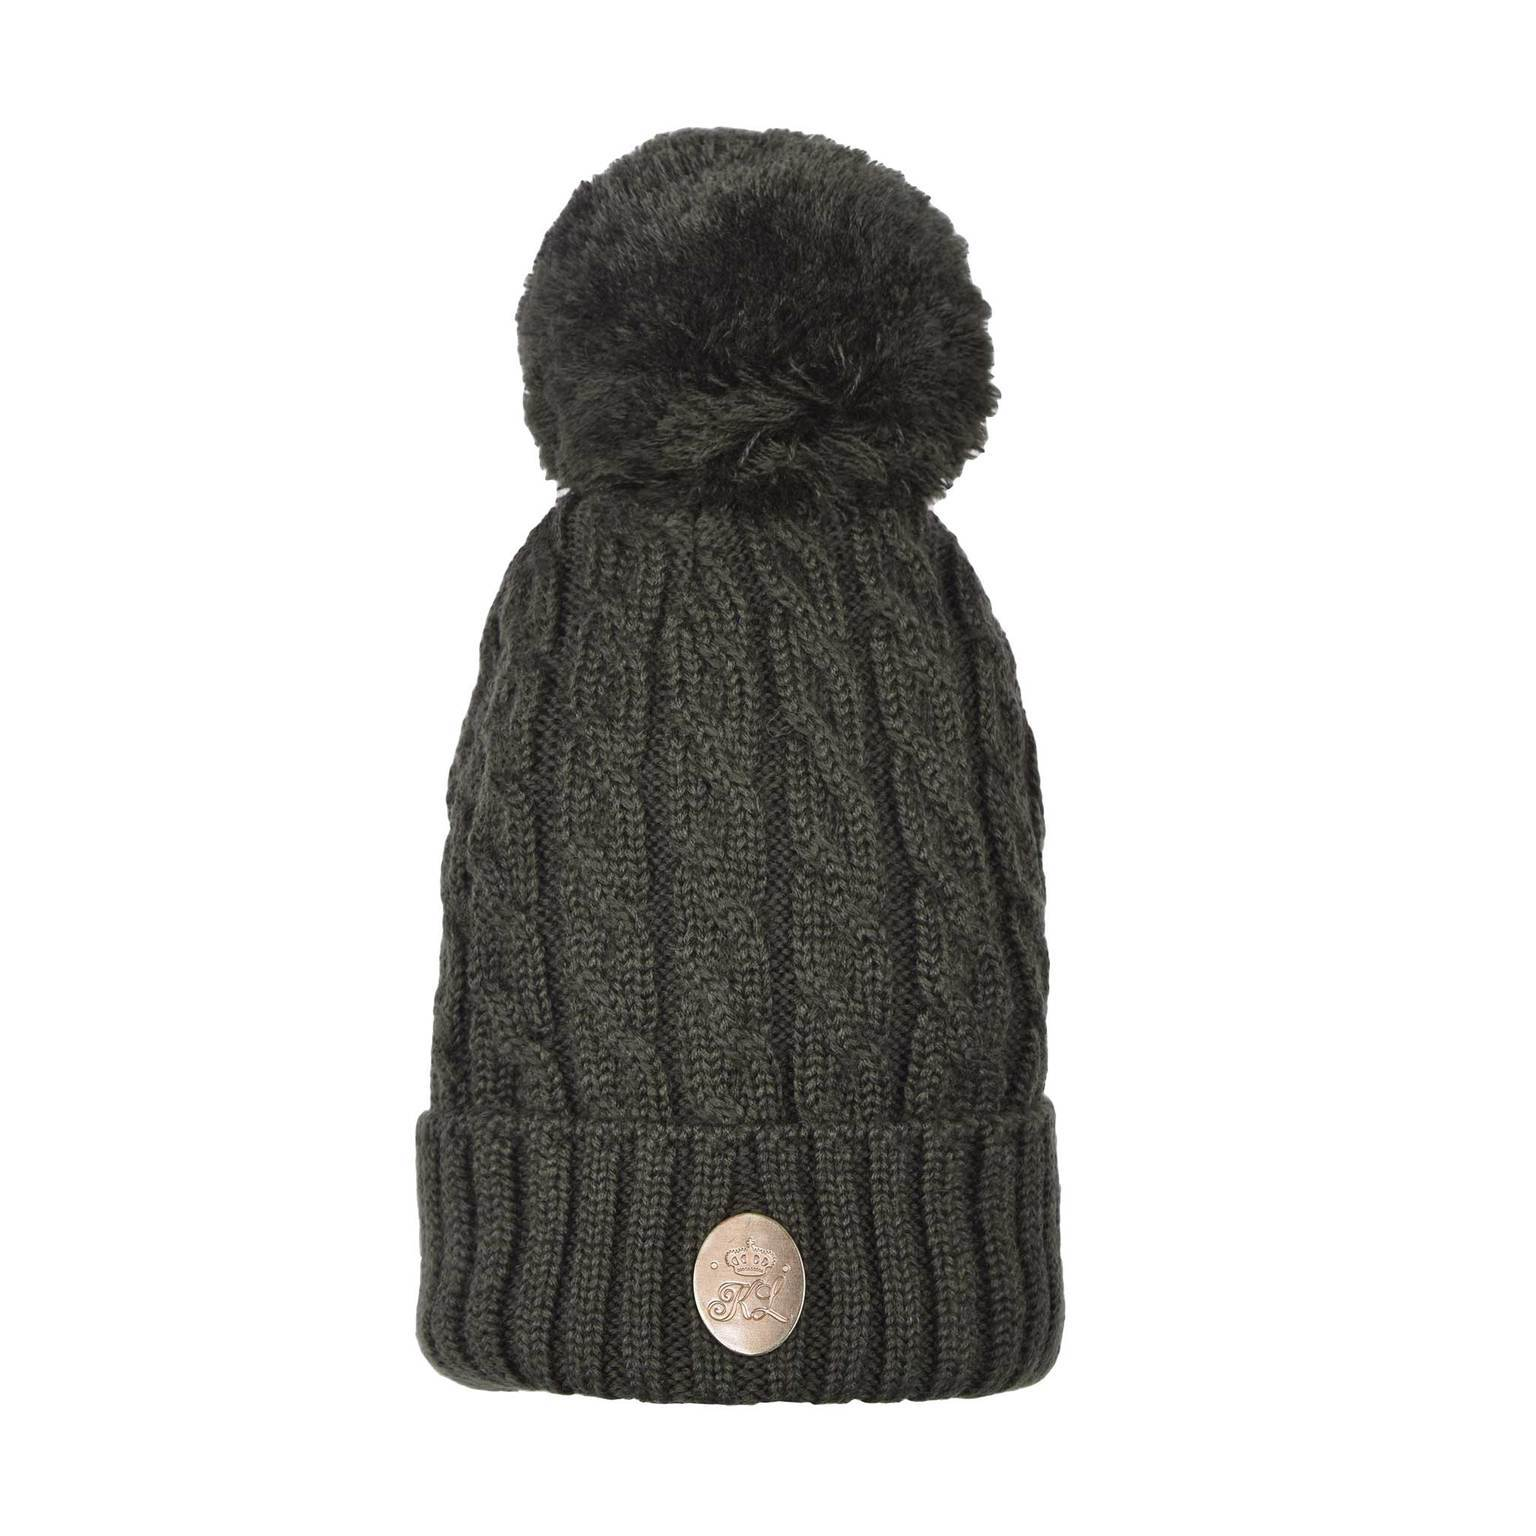 Kingsland KLdot Cable Knitted Hat